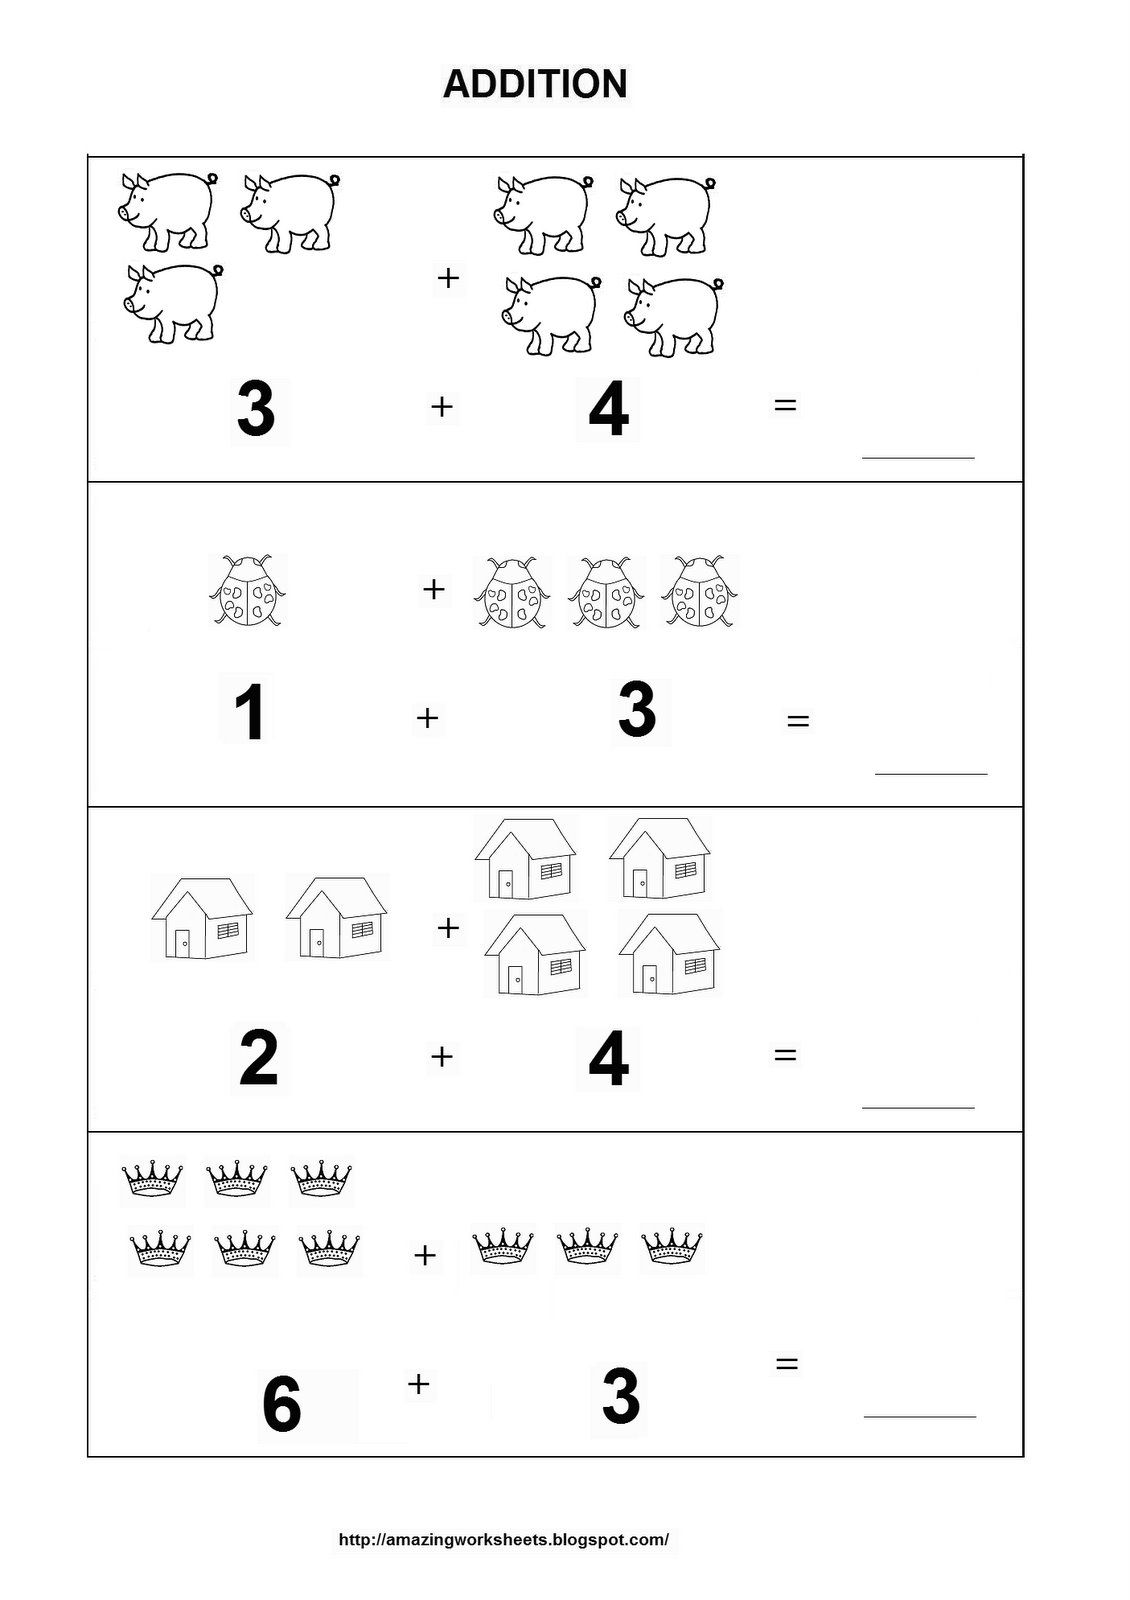 Worksheet 10001294 Kindergarten Addition Printable Worksheets – Kindergarten Worksheets Addition